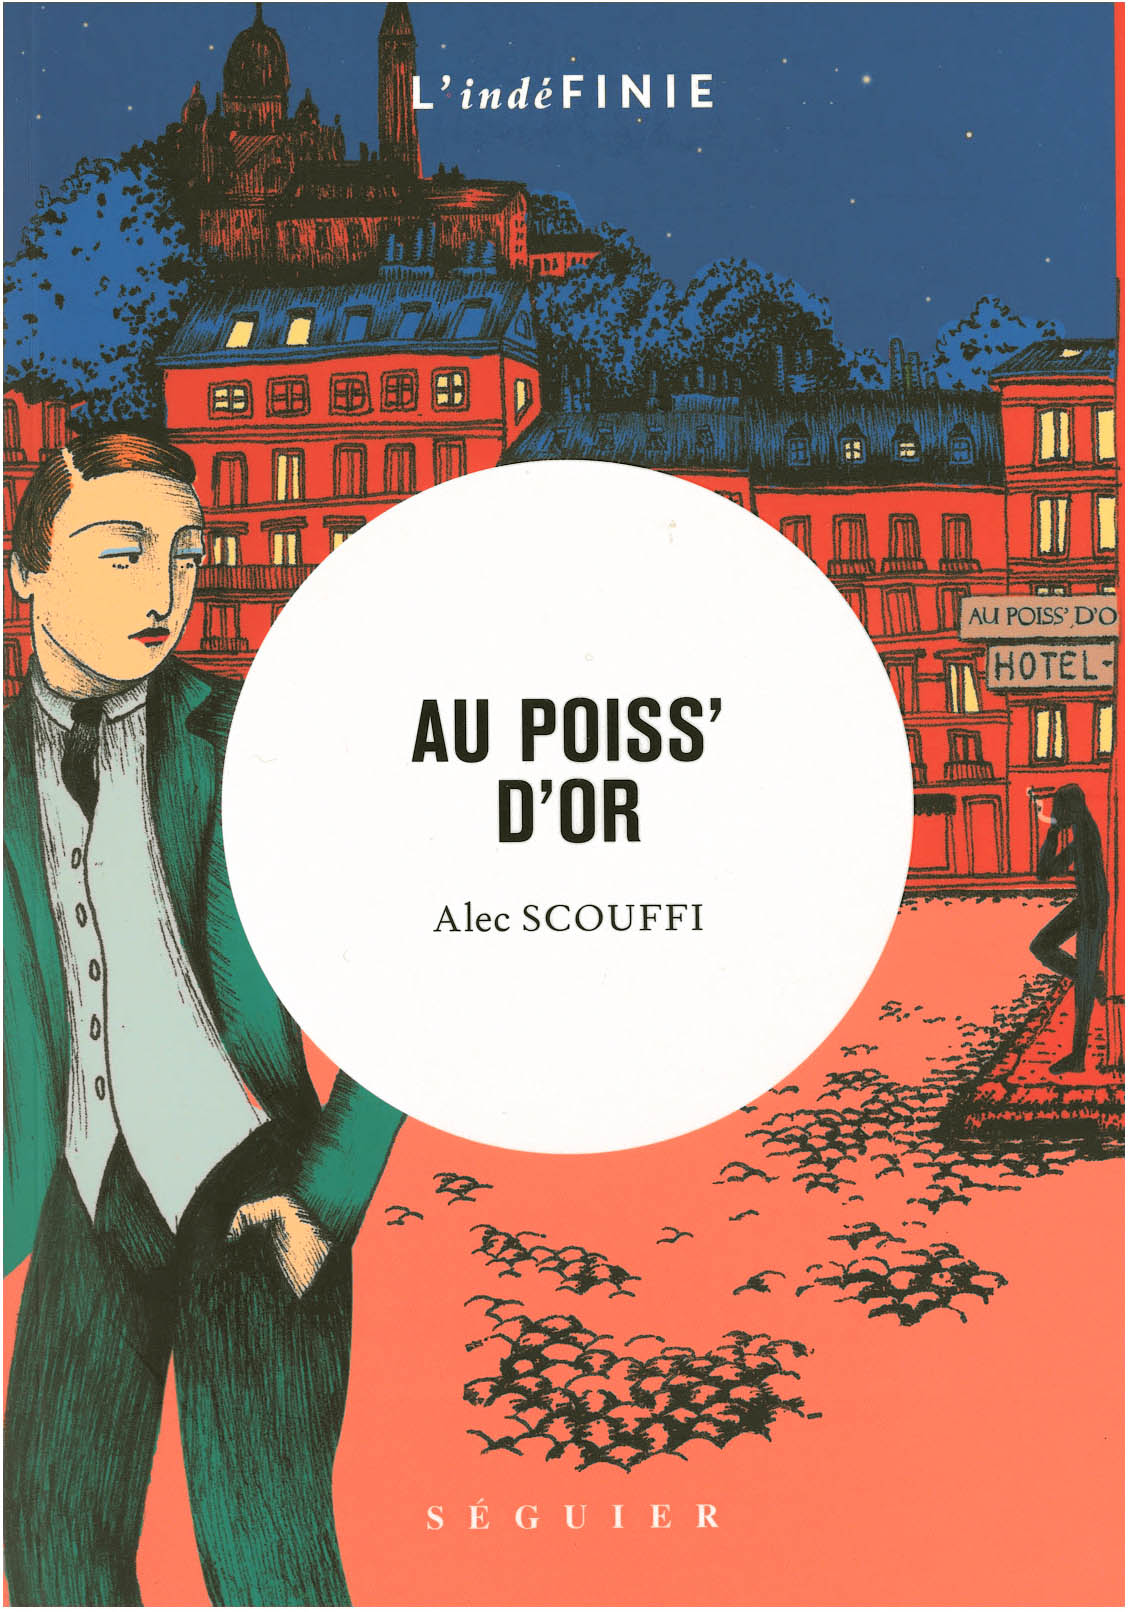 A. Scouffi, Au Poiss'd'Or (1929)